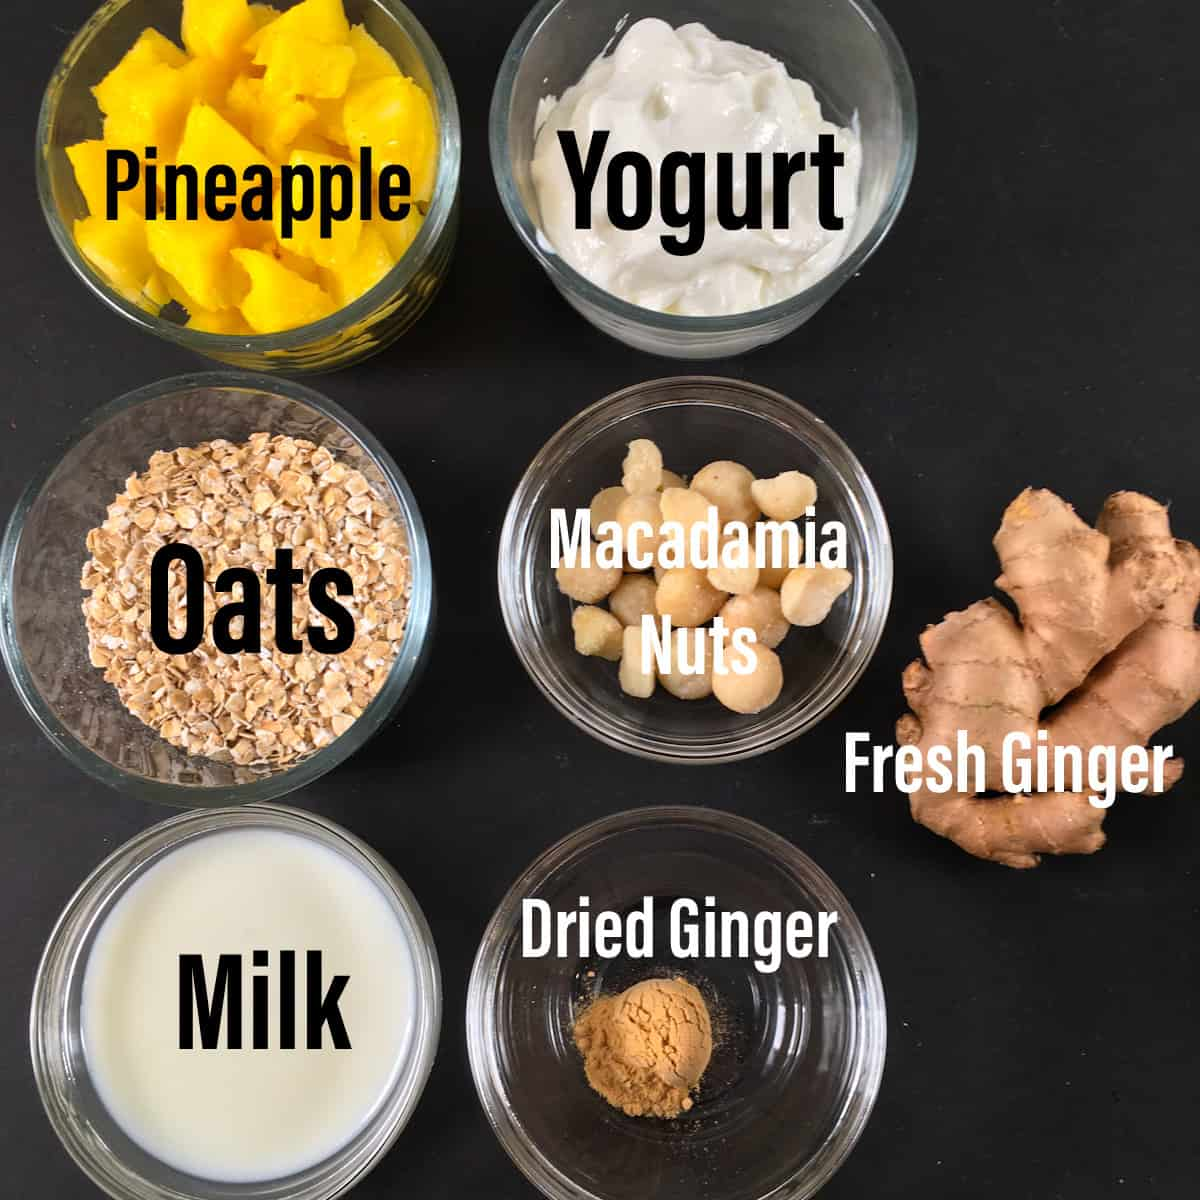 pineapple overnight oats ingredients